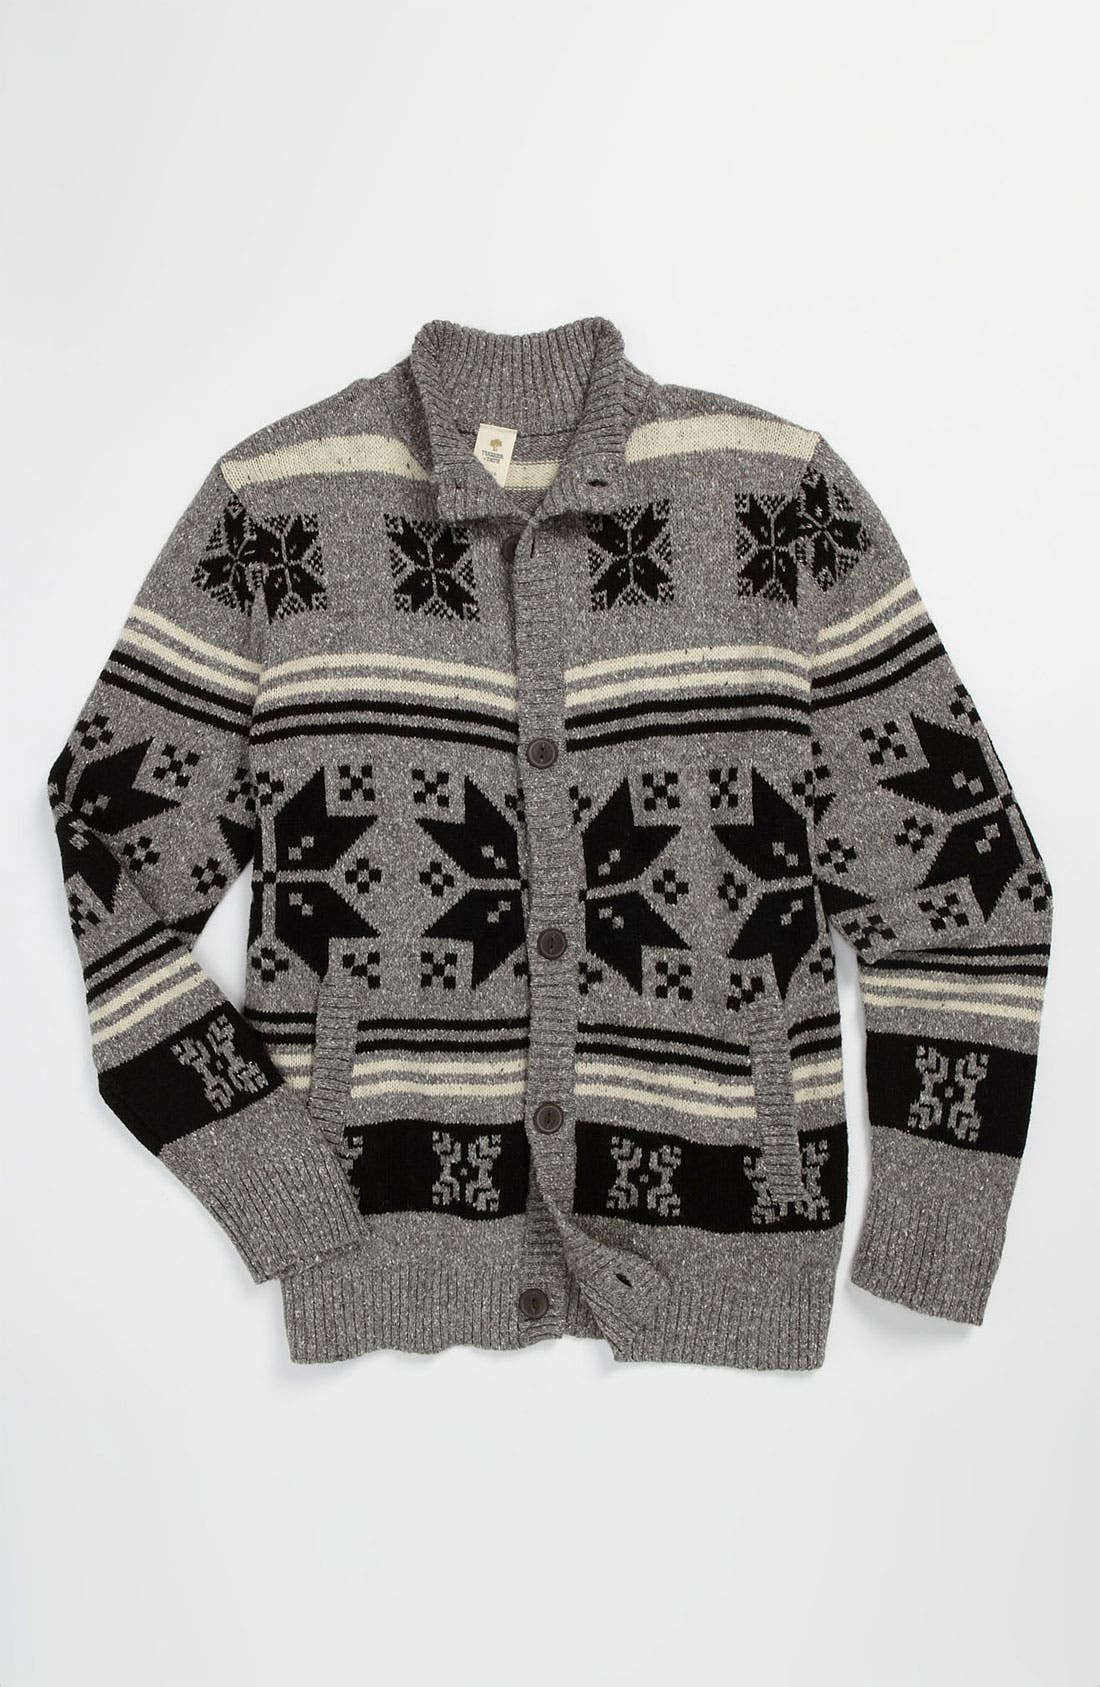 Alternate Image 1 Selected - Tucker + Tate 'Finnegan' Fair Isle Sweater (Big Boys)